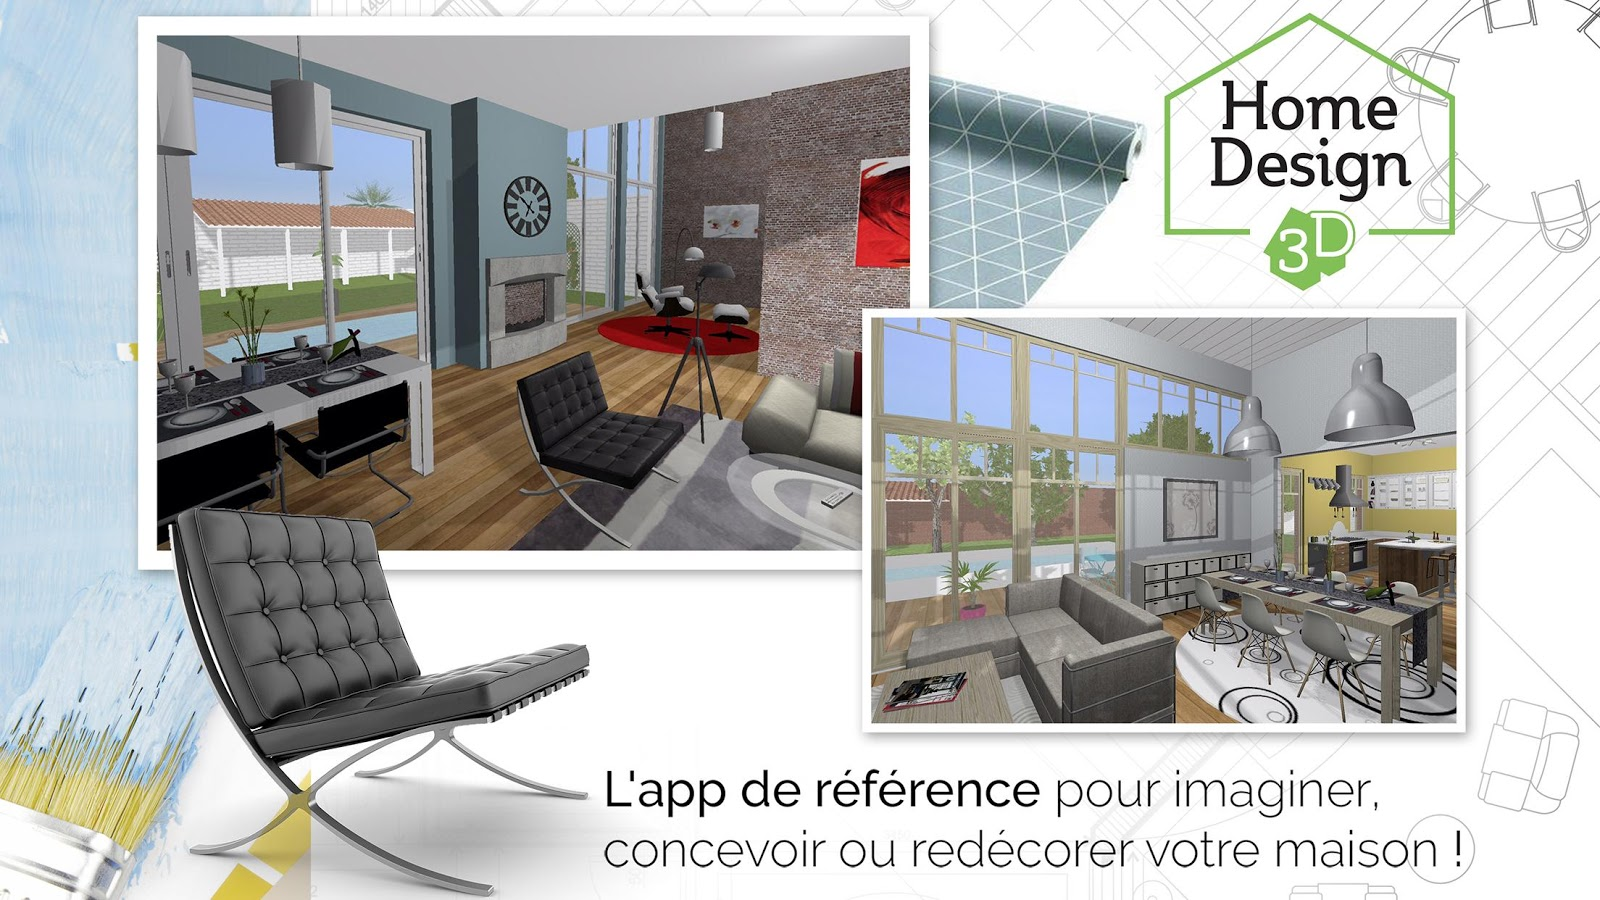 Home design 3d freemium applications android sur 3d room design app